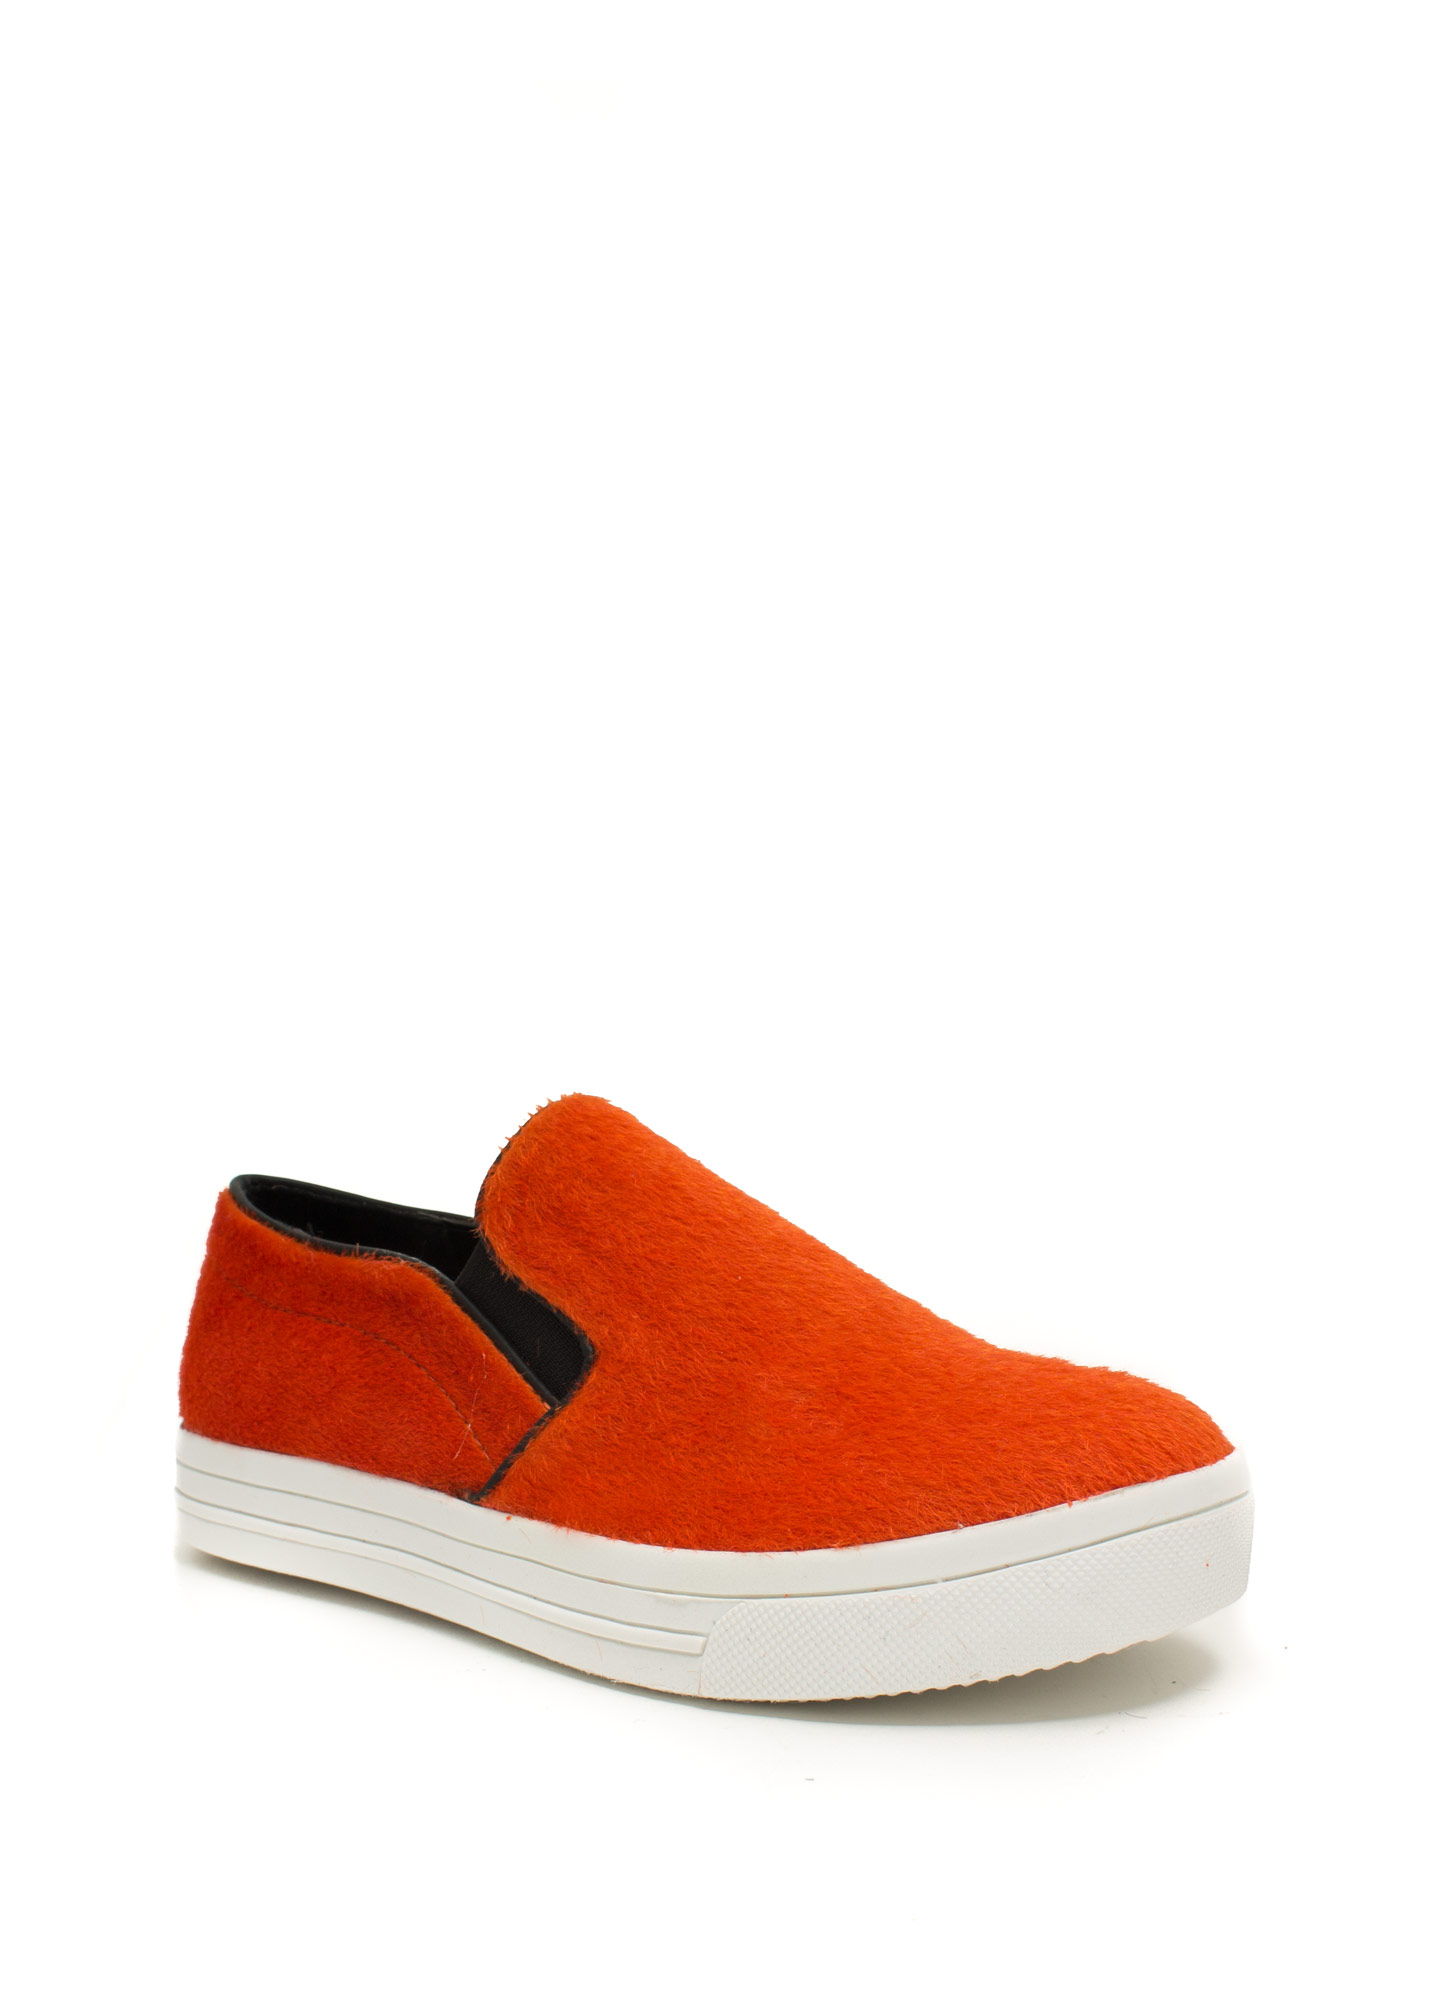 Furry Piped Slip-On Sneakers ORANGE